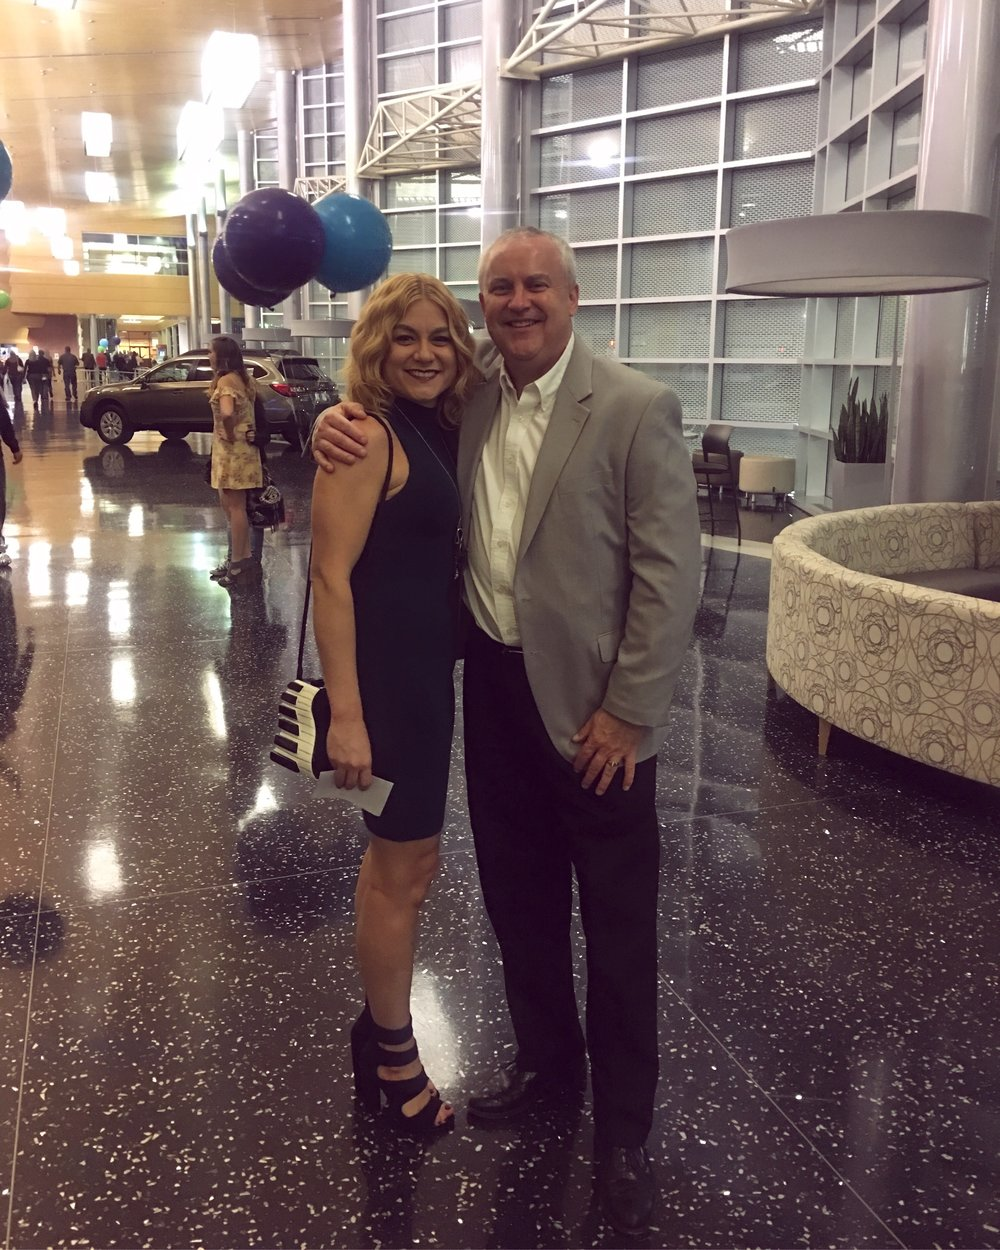 Kent Pyle with his niece Alicia at the Grand Wayne Center